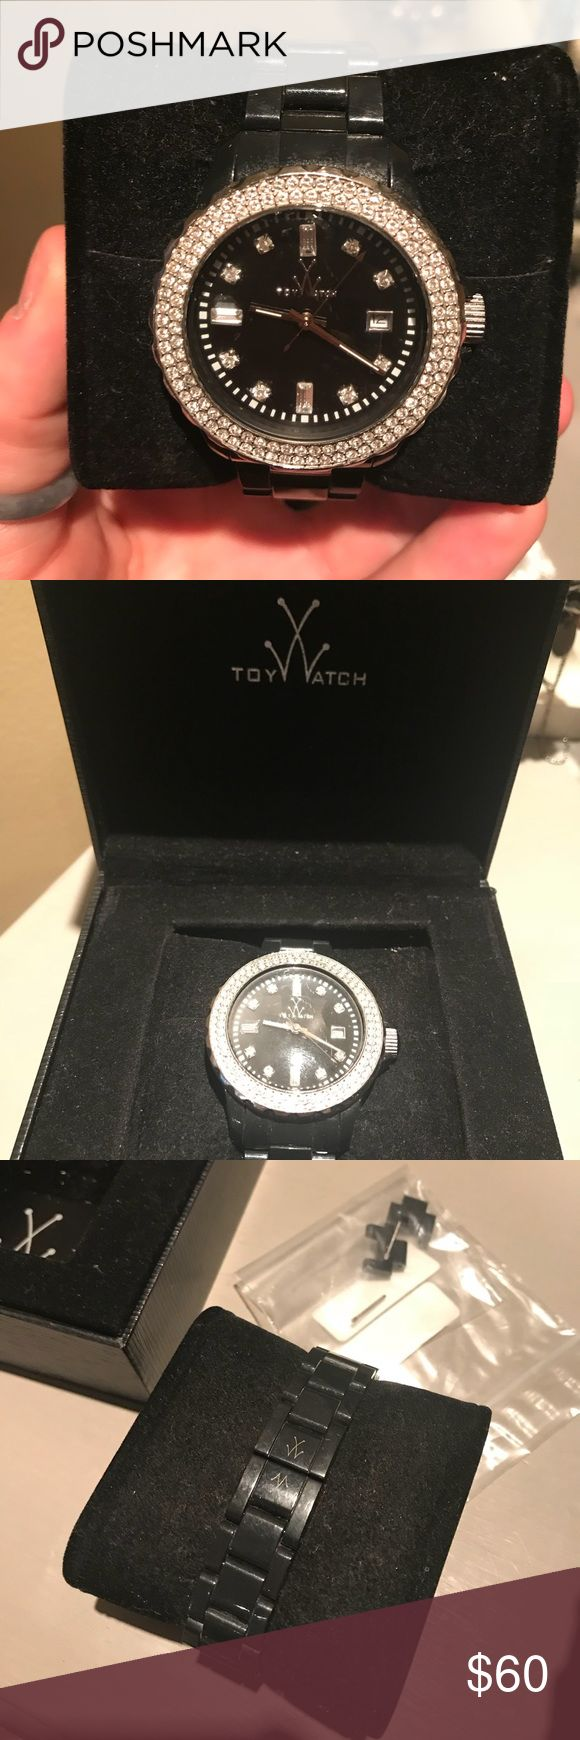 Toy Watch Black toy Watch. Have only worn it maybe 5 times! Am moving and getting rid of a lot of items. Has the extra links Incase you need more room. ToyWatch Jewelry